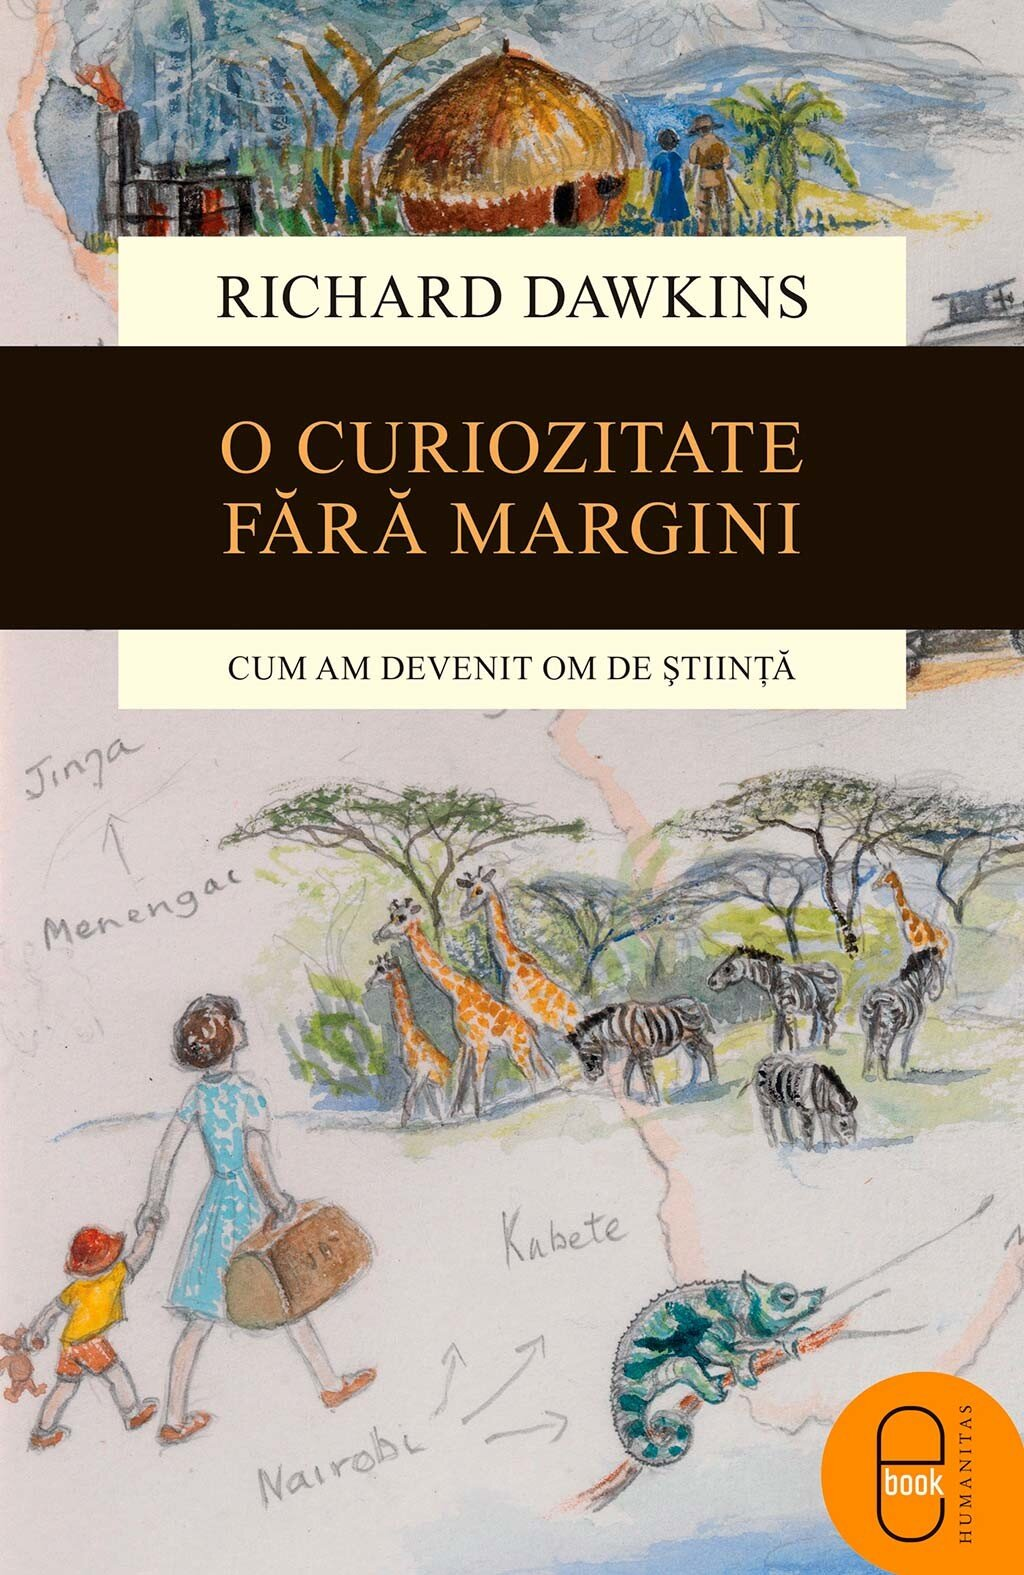 O curiozitate fara margini. Cum am devenit om de stiinta (eBook)